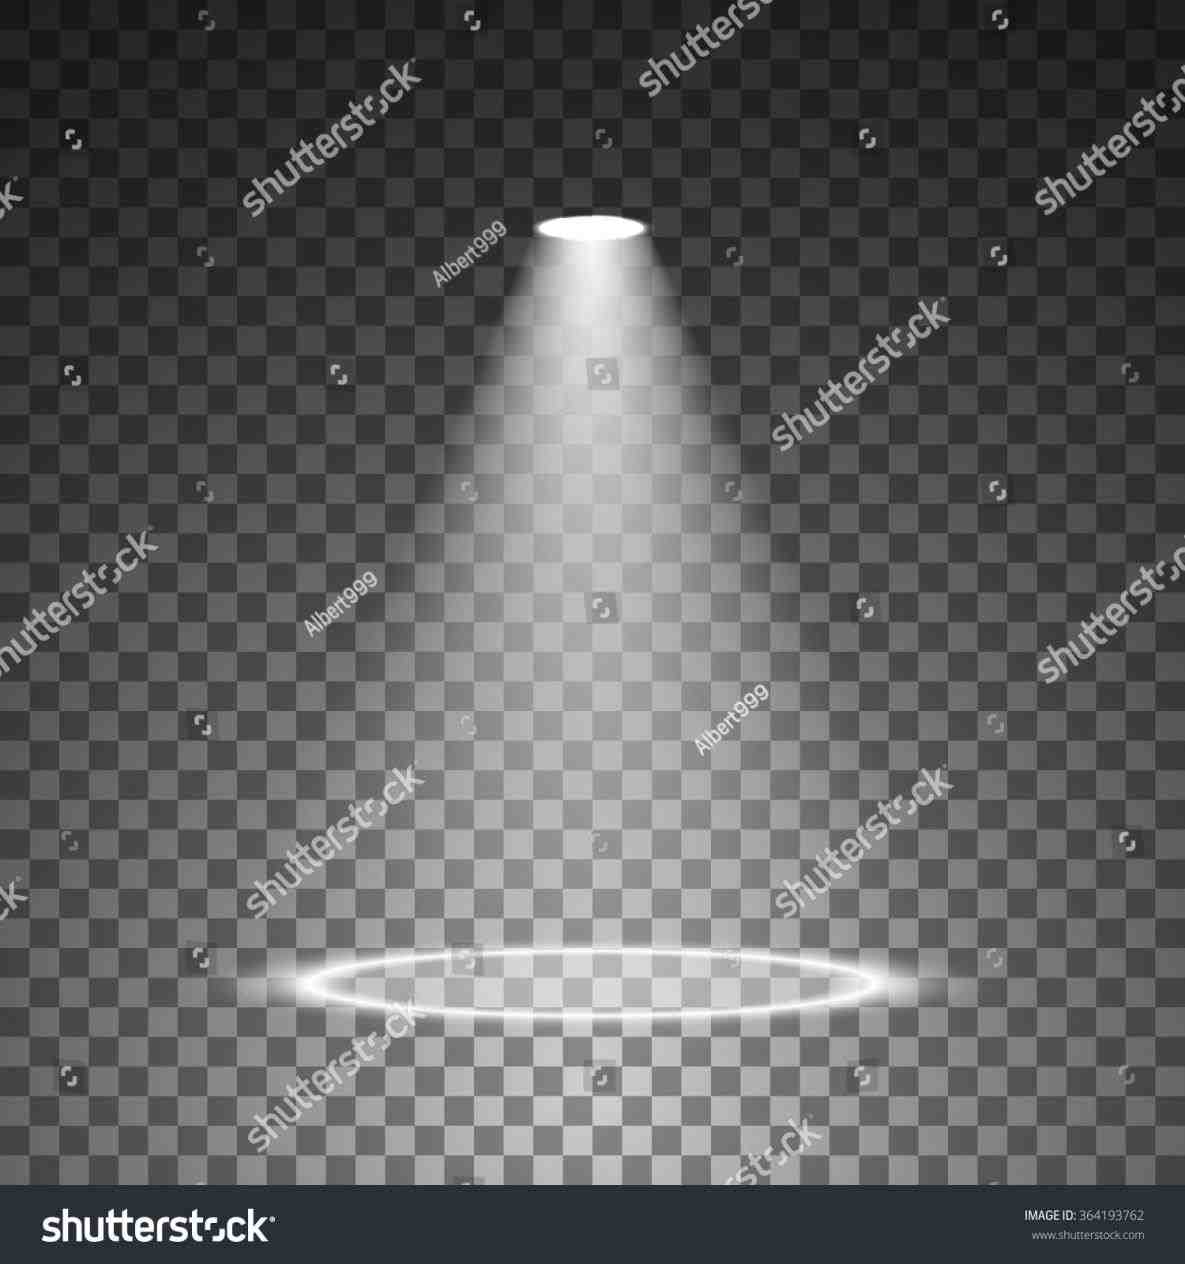 wwwglsciencesinccom white spotlight background png imagessmatte__or_light hd  u k videos videoblocks royaltyfree hd white spotlight background png u k  videos PlusPng.com  - Spotlight PNG HD Free